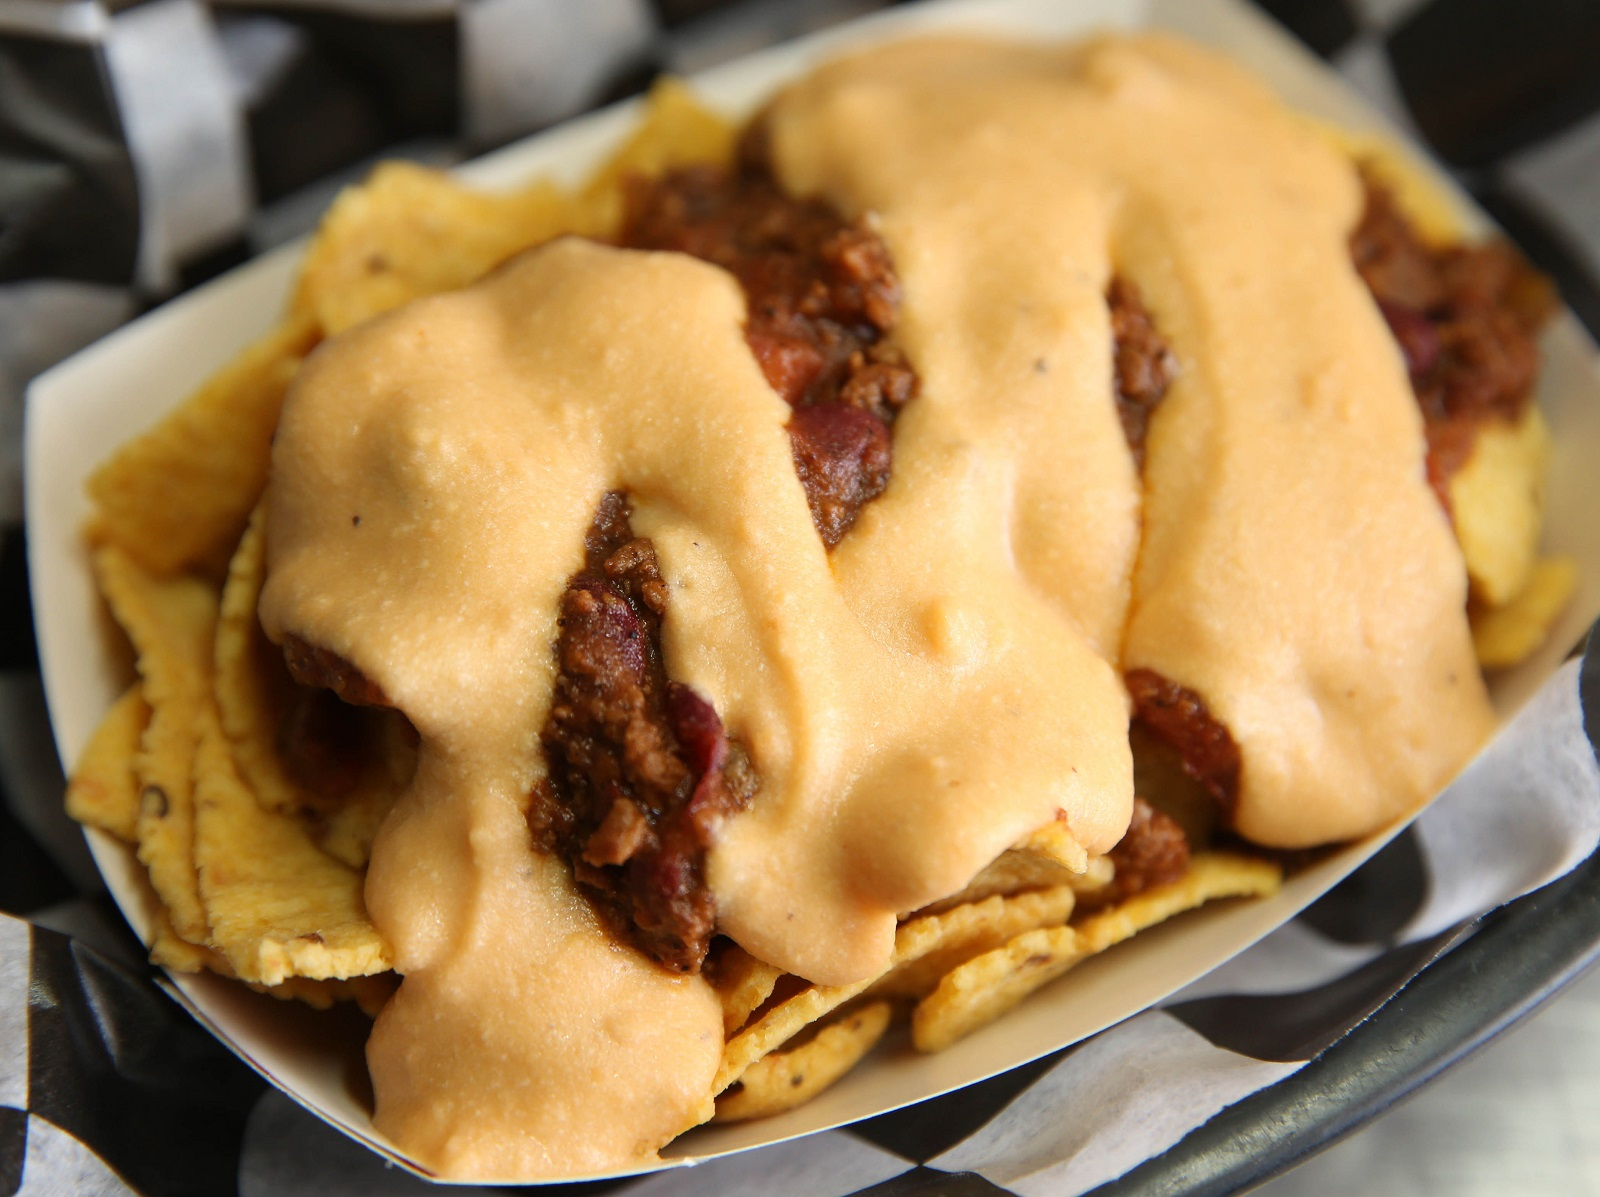 Chili nachos are a side from R&R BBQ. (Sharon Cantillon/Buffalo News)